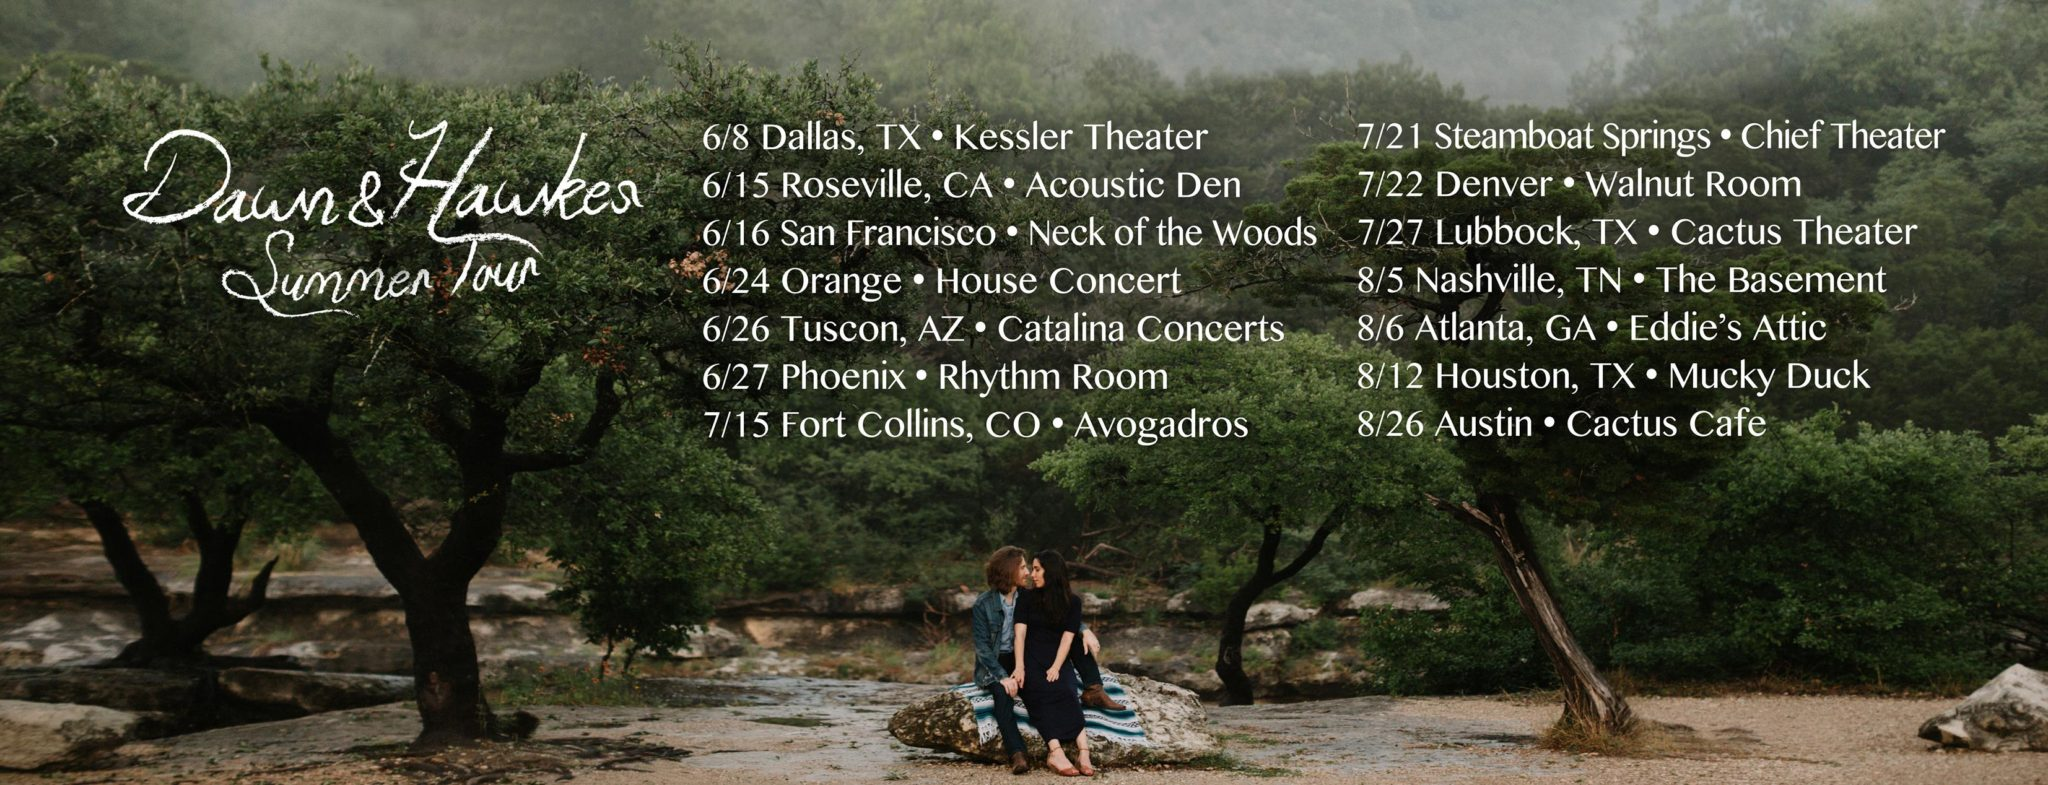 Dawn & Hawkes summer tour poster